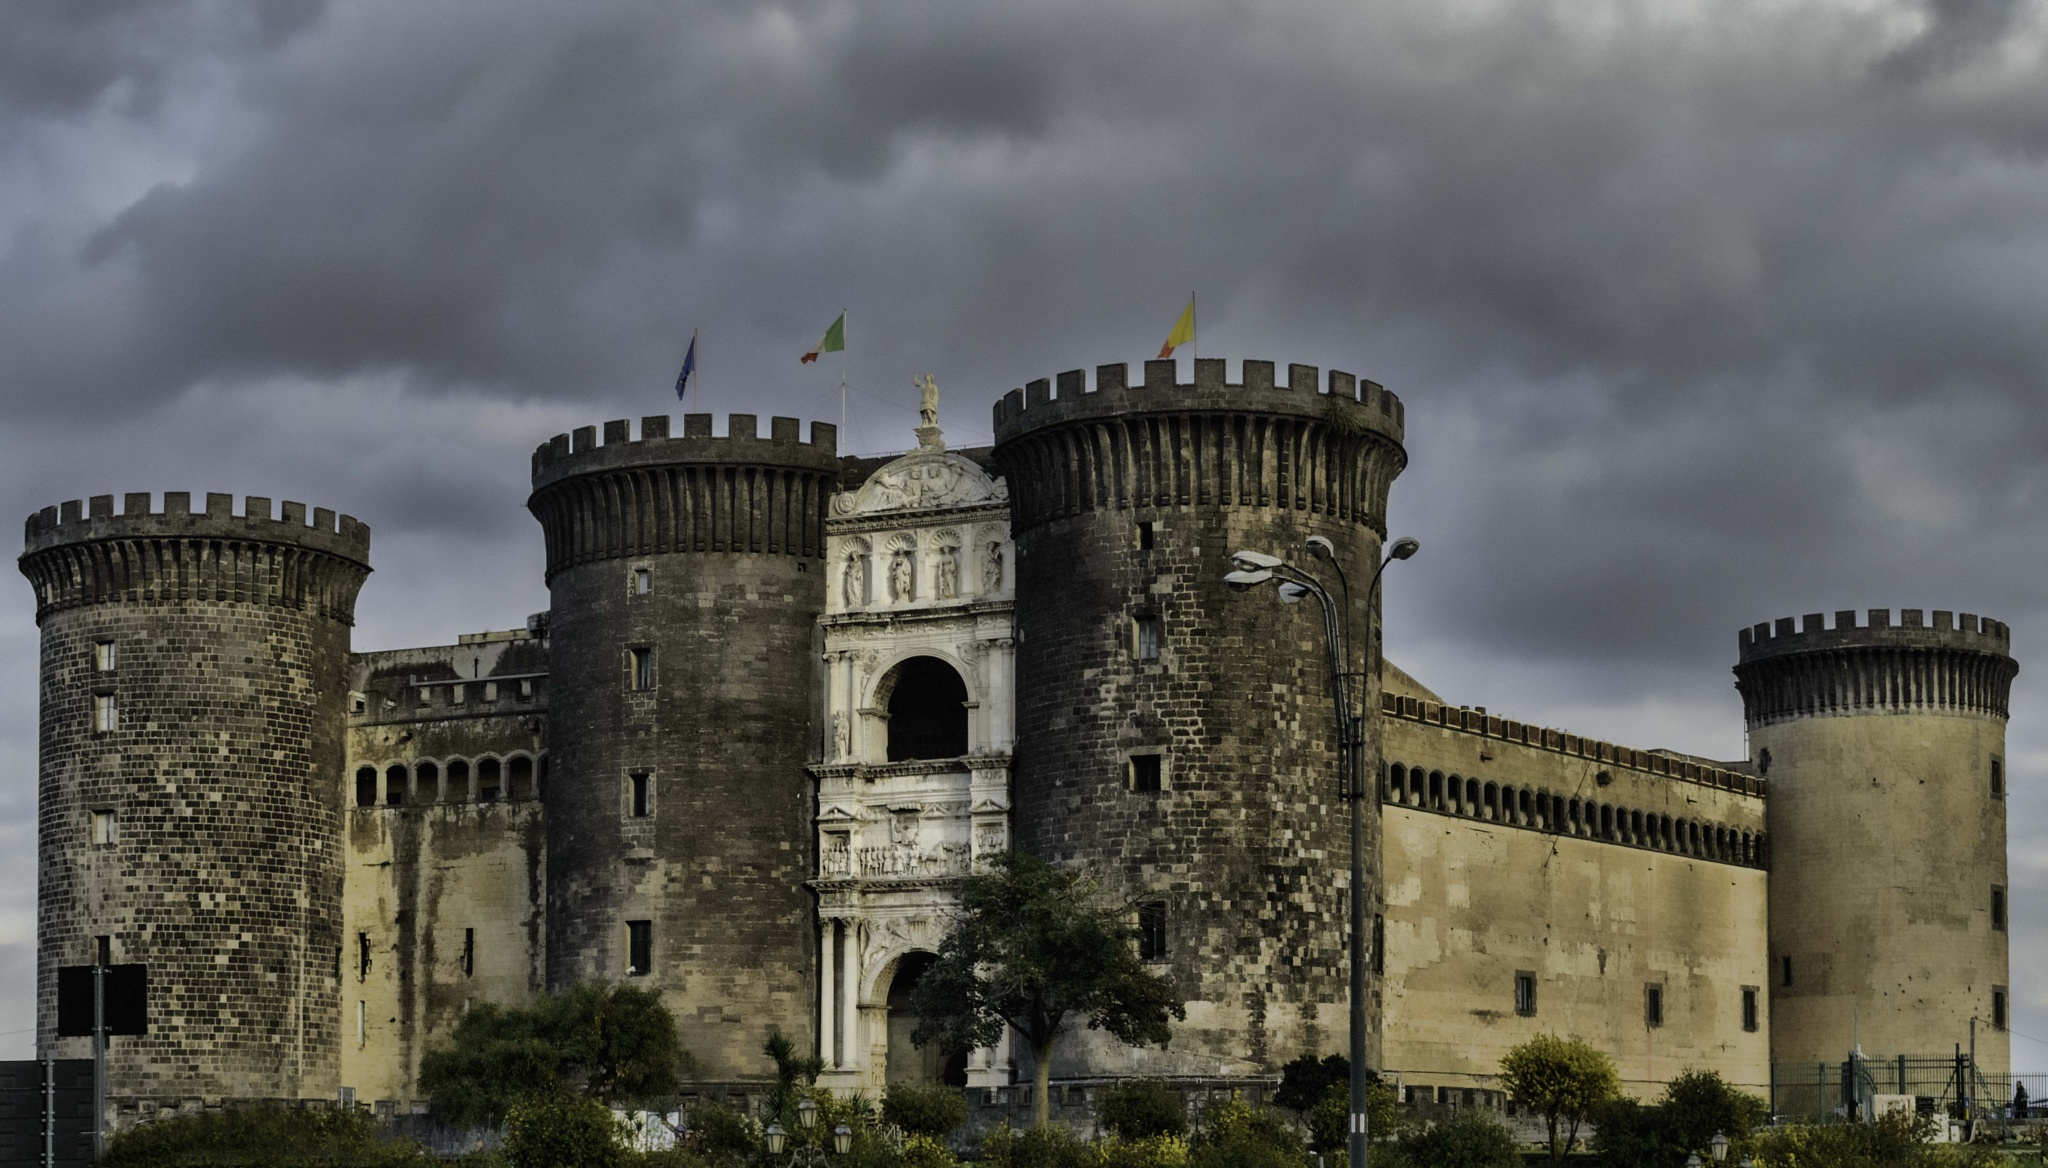 Castel Nuovo in Naples, Italy. by peter.busuttil